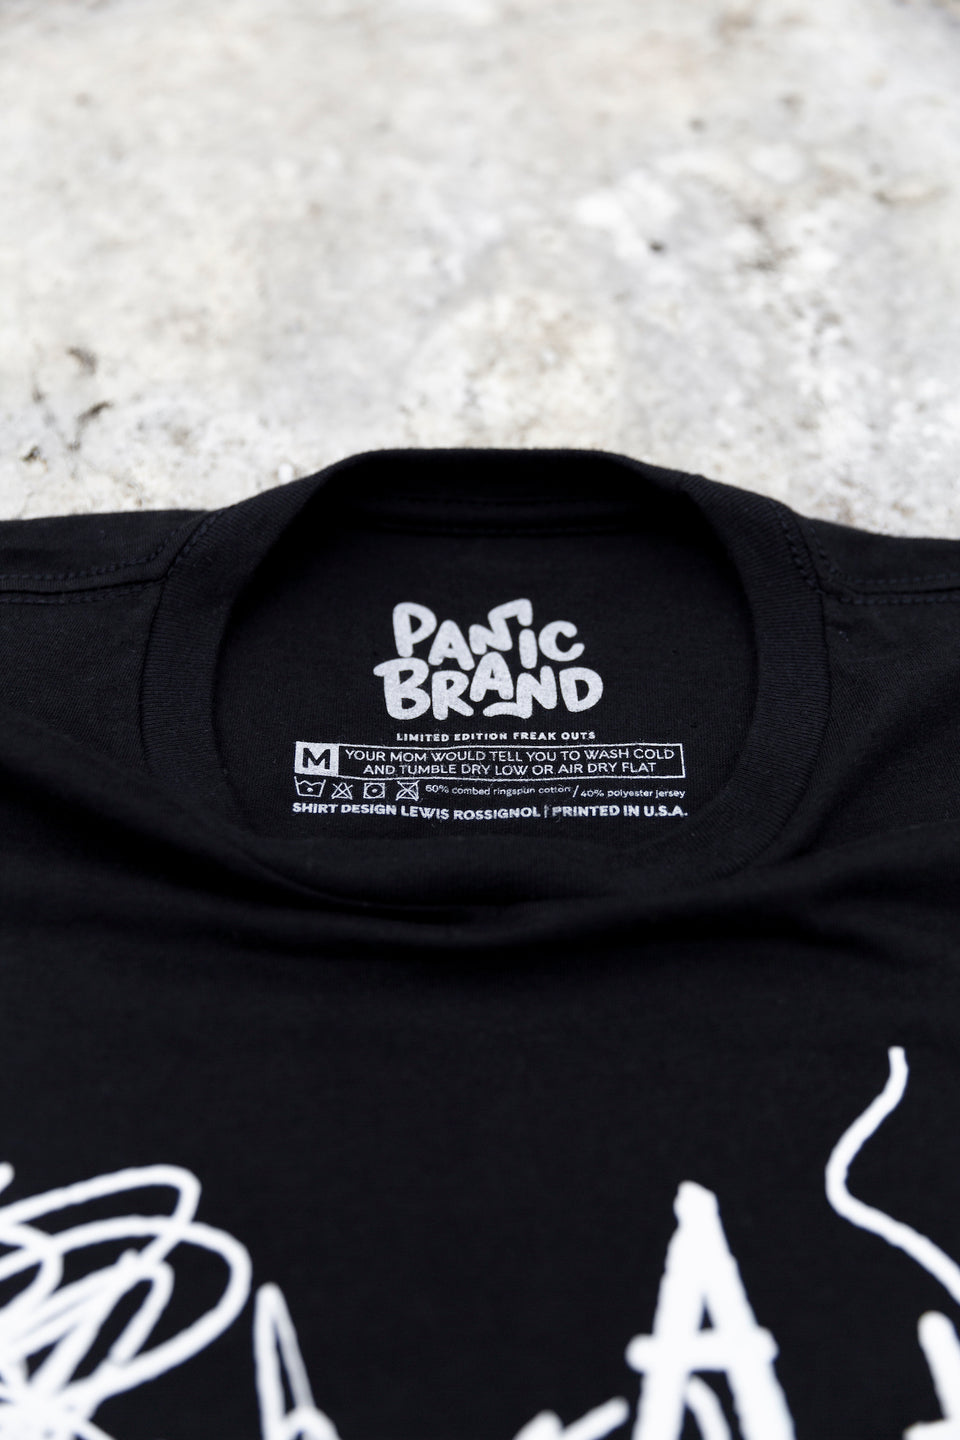 Panic Brand ↑ ↑ ↓ ↓ ← → ← → T‑shirt Label